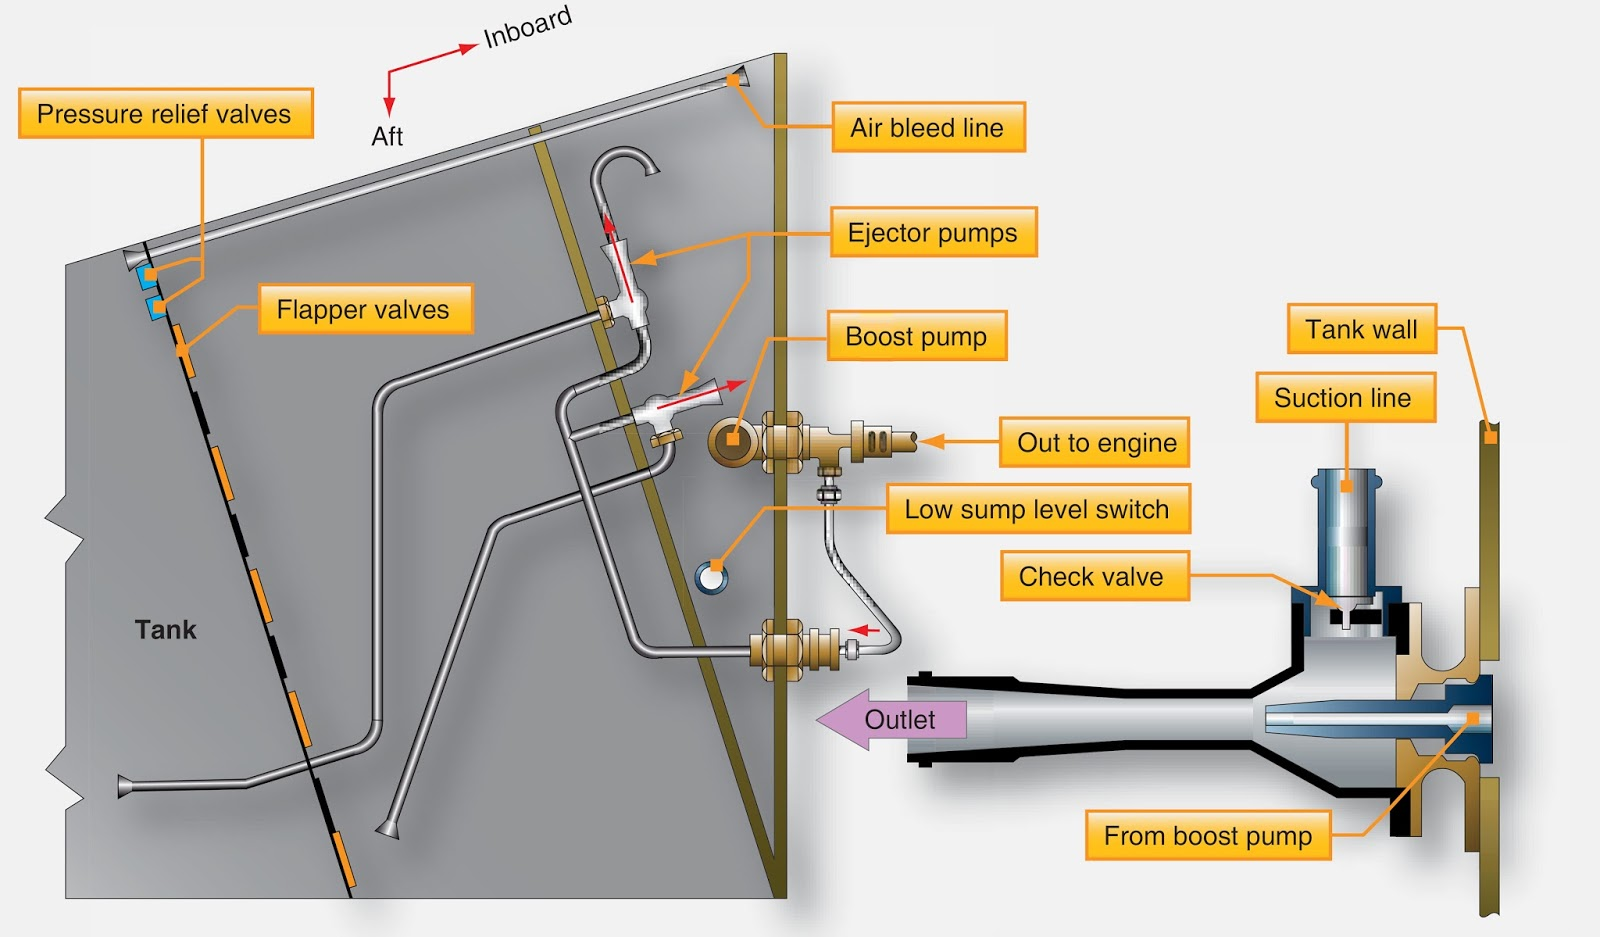 Aeronautical Guide Types Of Aircraft Fuel Pumps Schematic Cutaway Showing Slide Cycle And Case Ejection An Ejector Pump Uses A Venturi To Draw Into The Boost Sump Area Tank